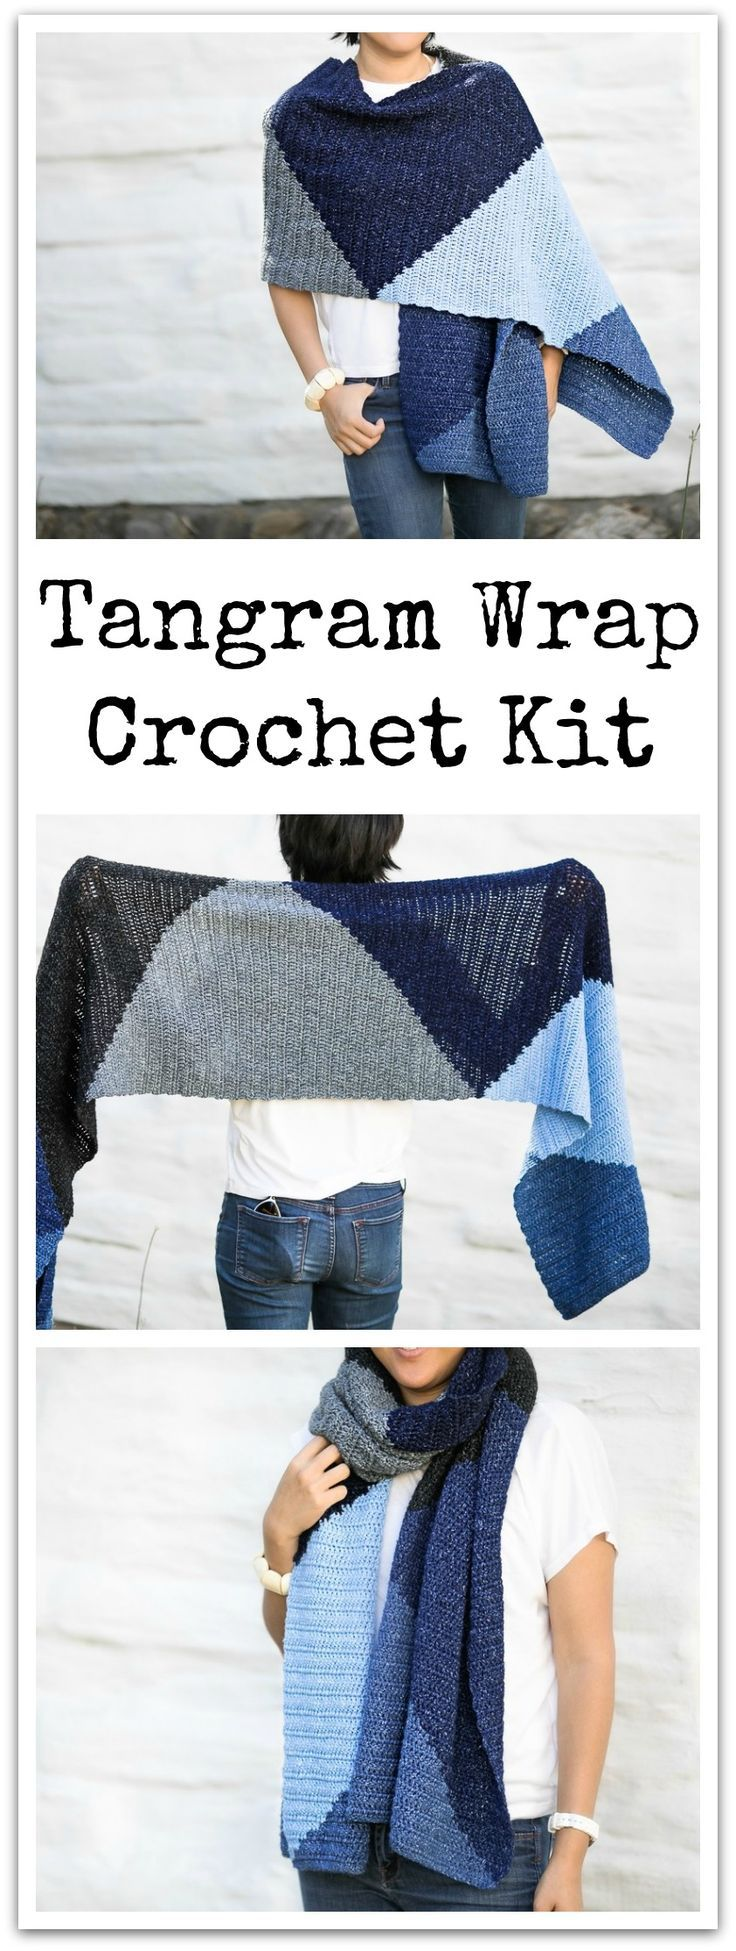 This tangram wrap crochet kit is made in Lion Brand jeans yarn. Pattern included in order of kit. #ad #affiliate #crochet